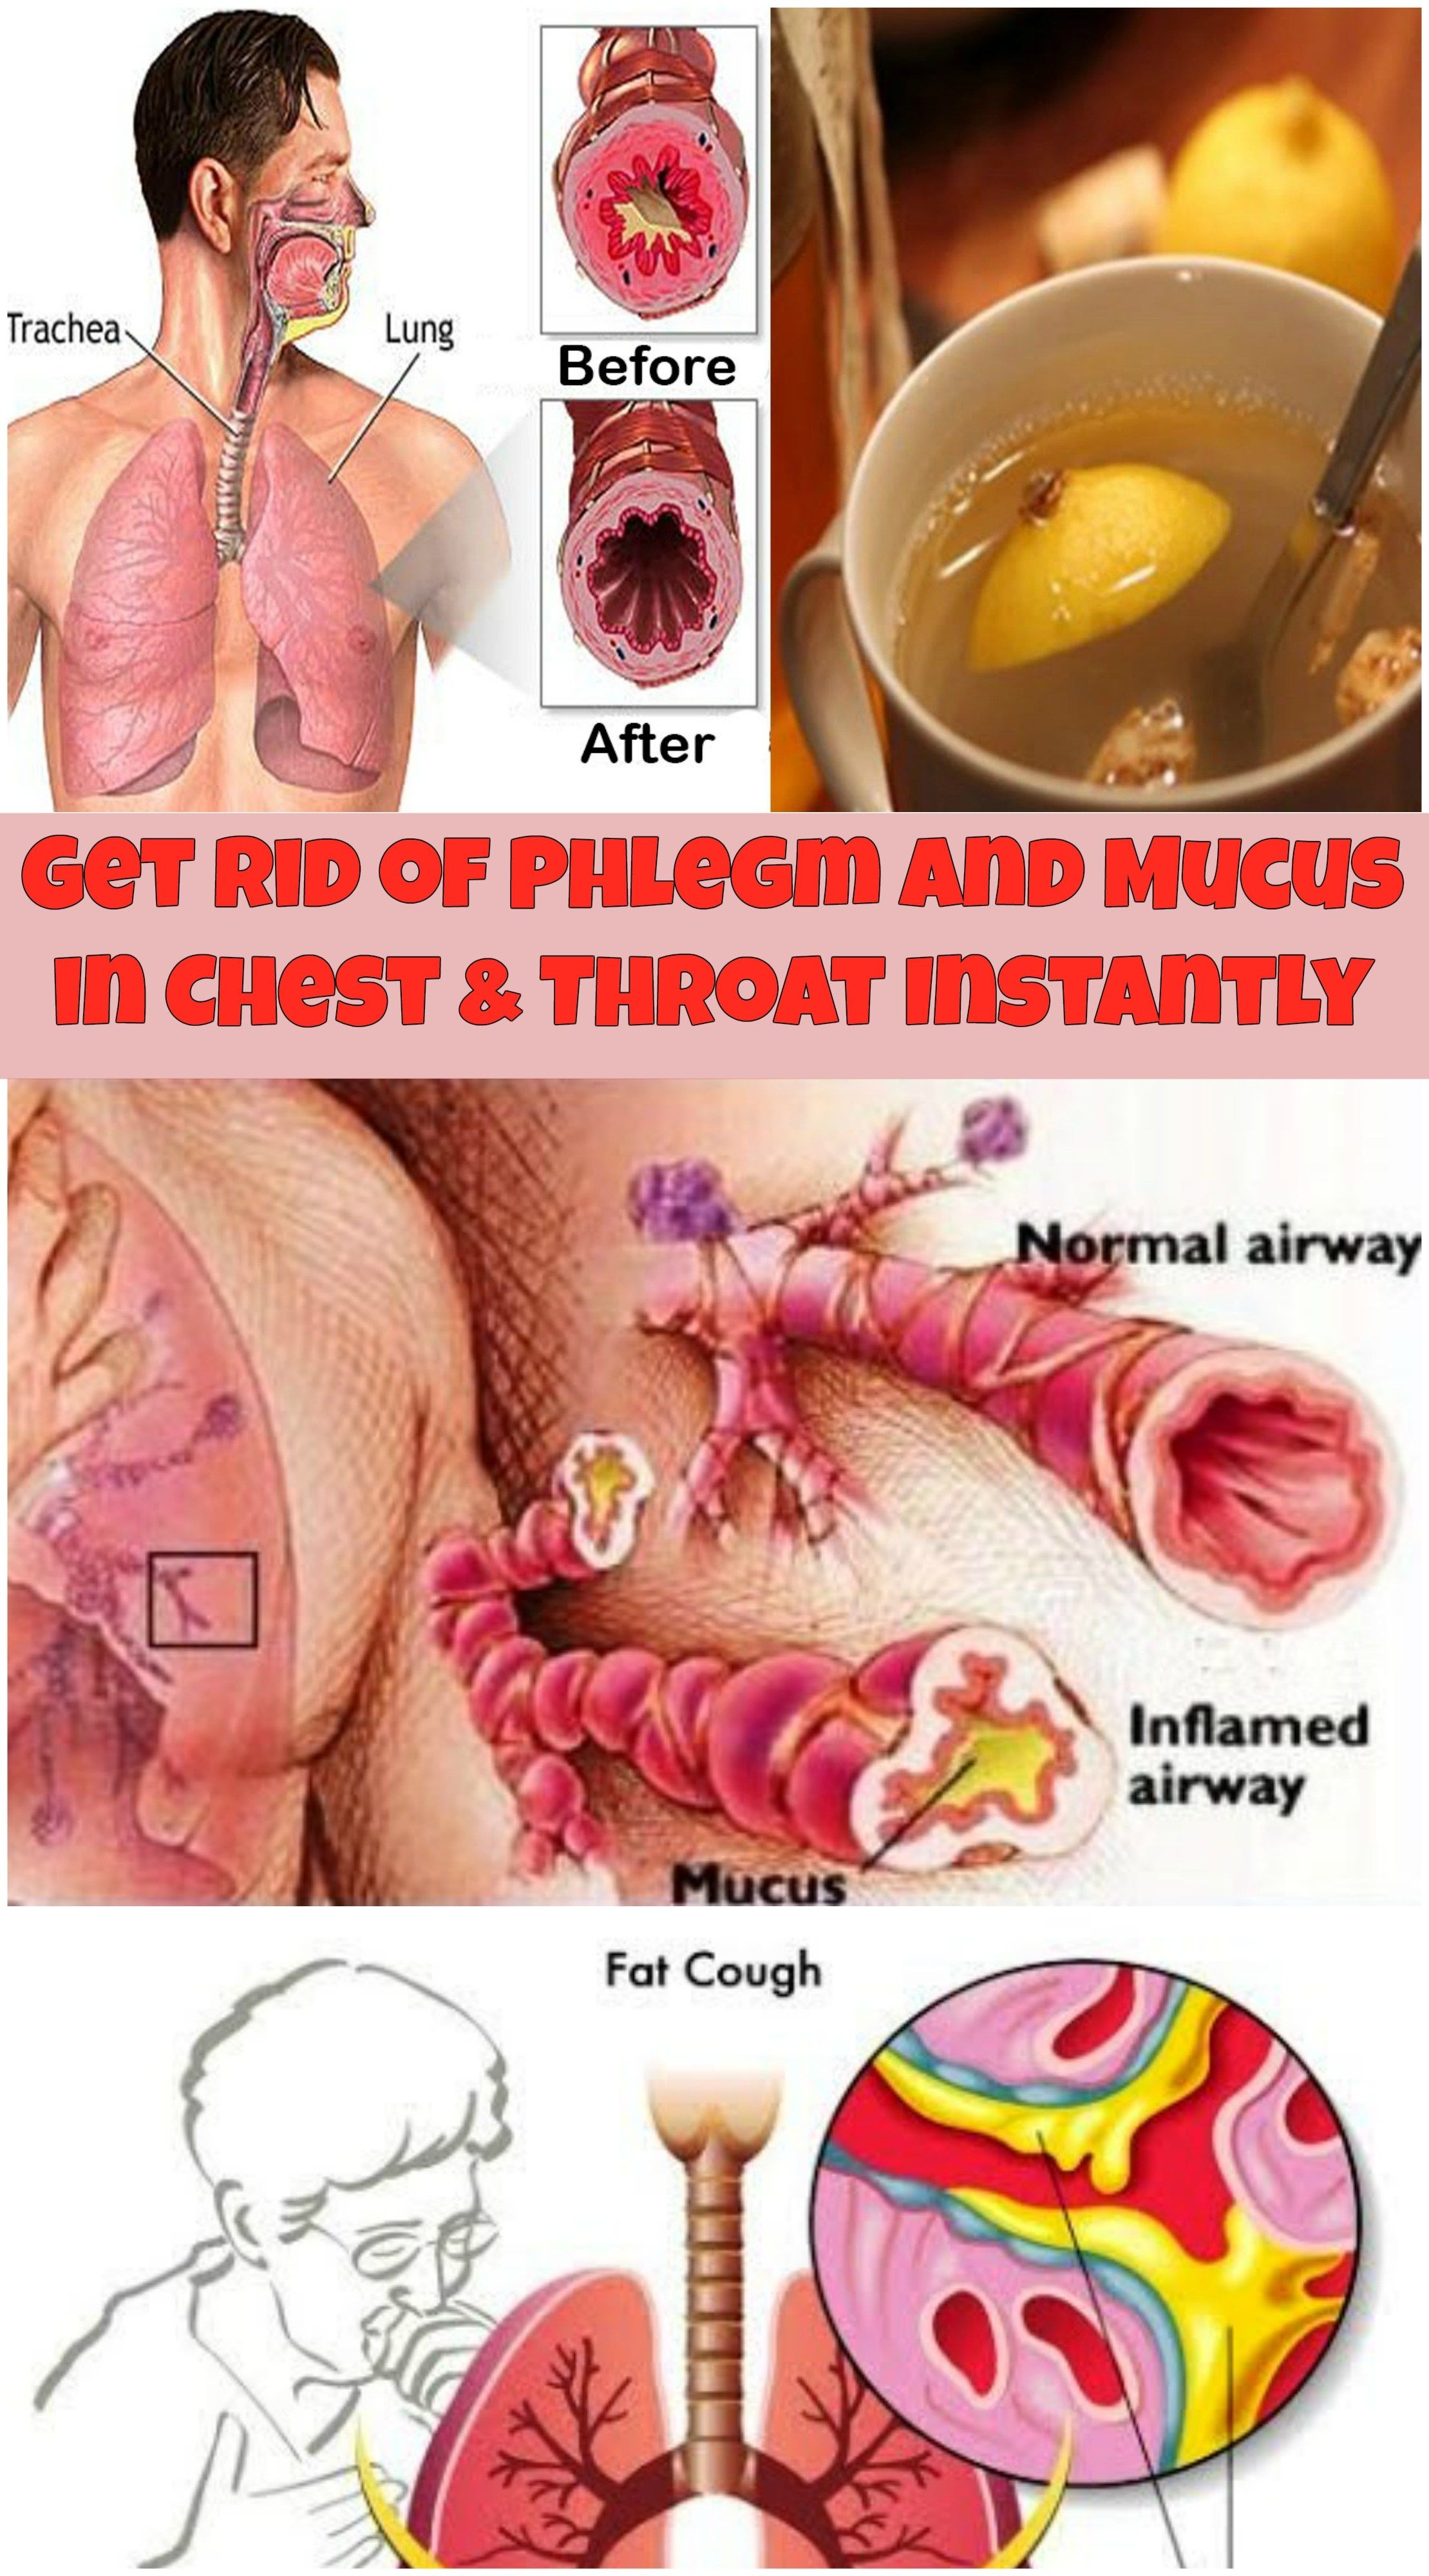 836b659a3ffdbe85c6fdab39c29f2f4d - How To Get Rid Of Phlegm In Chest Asthma